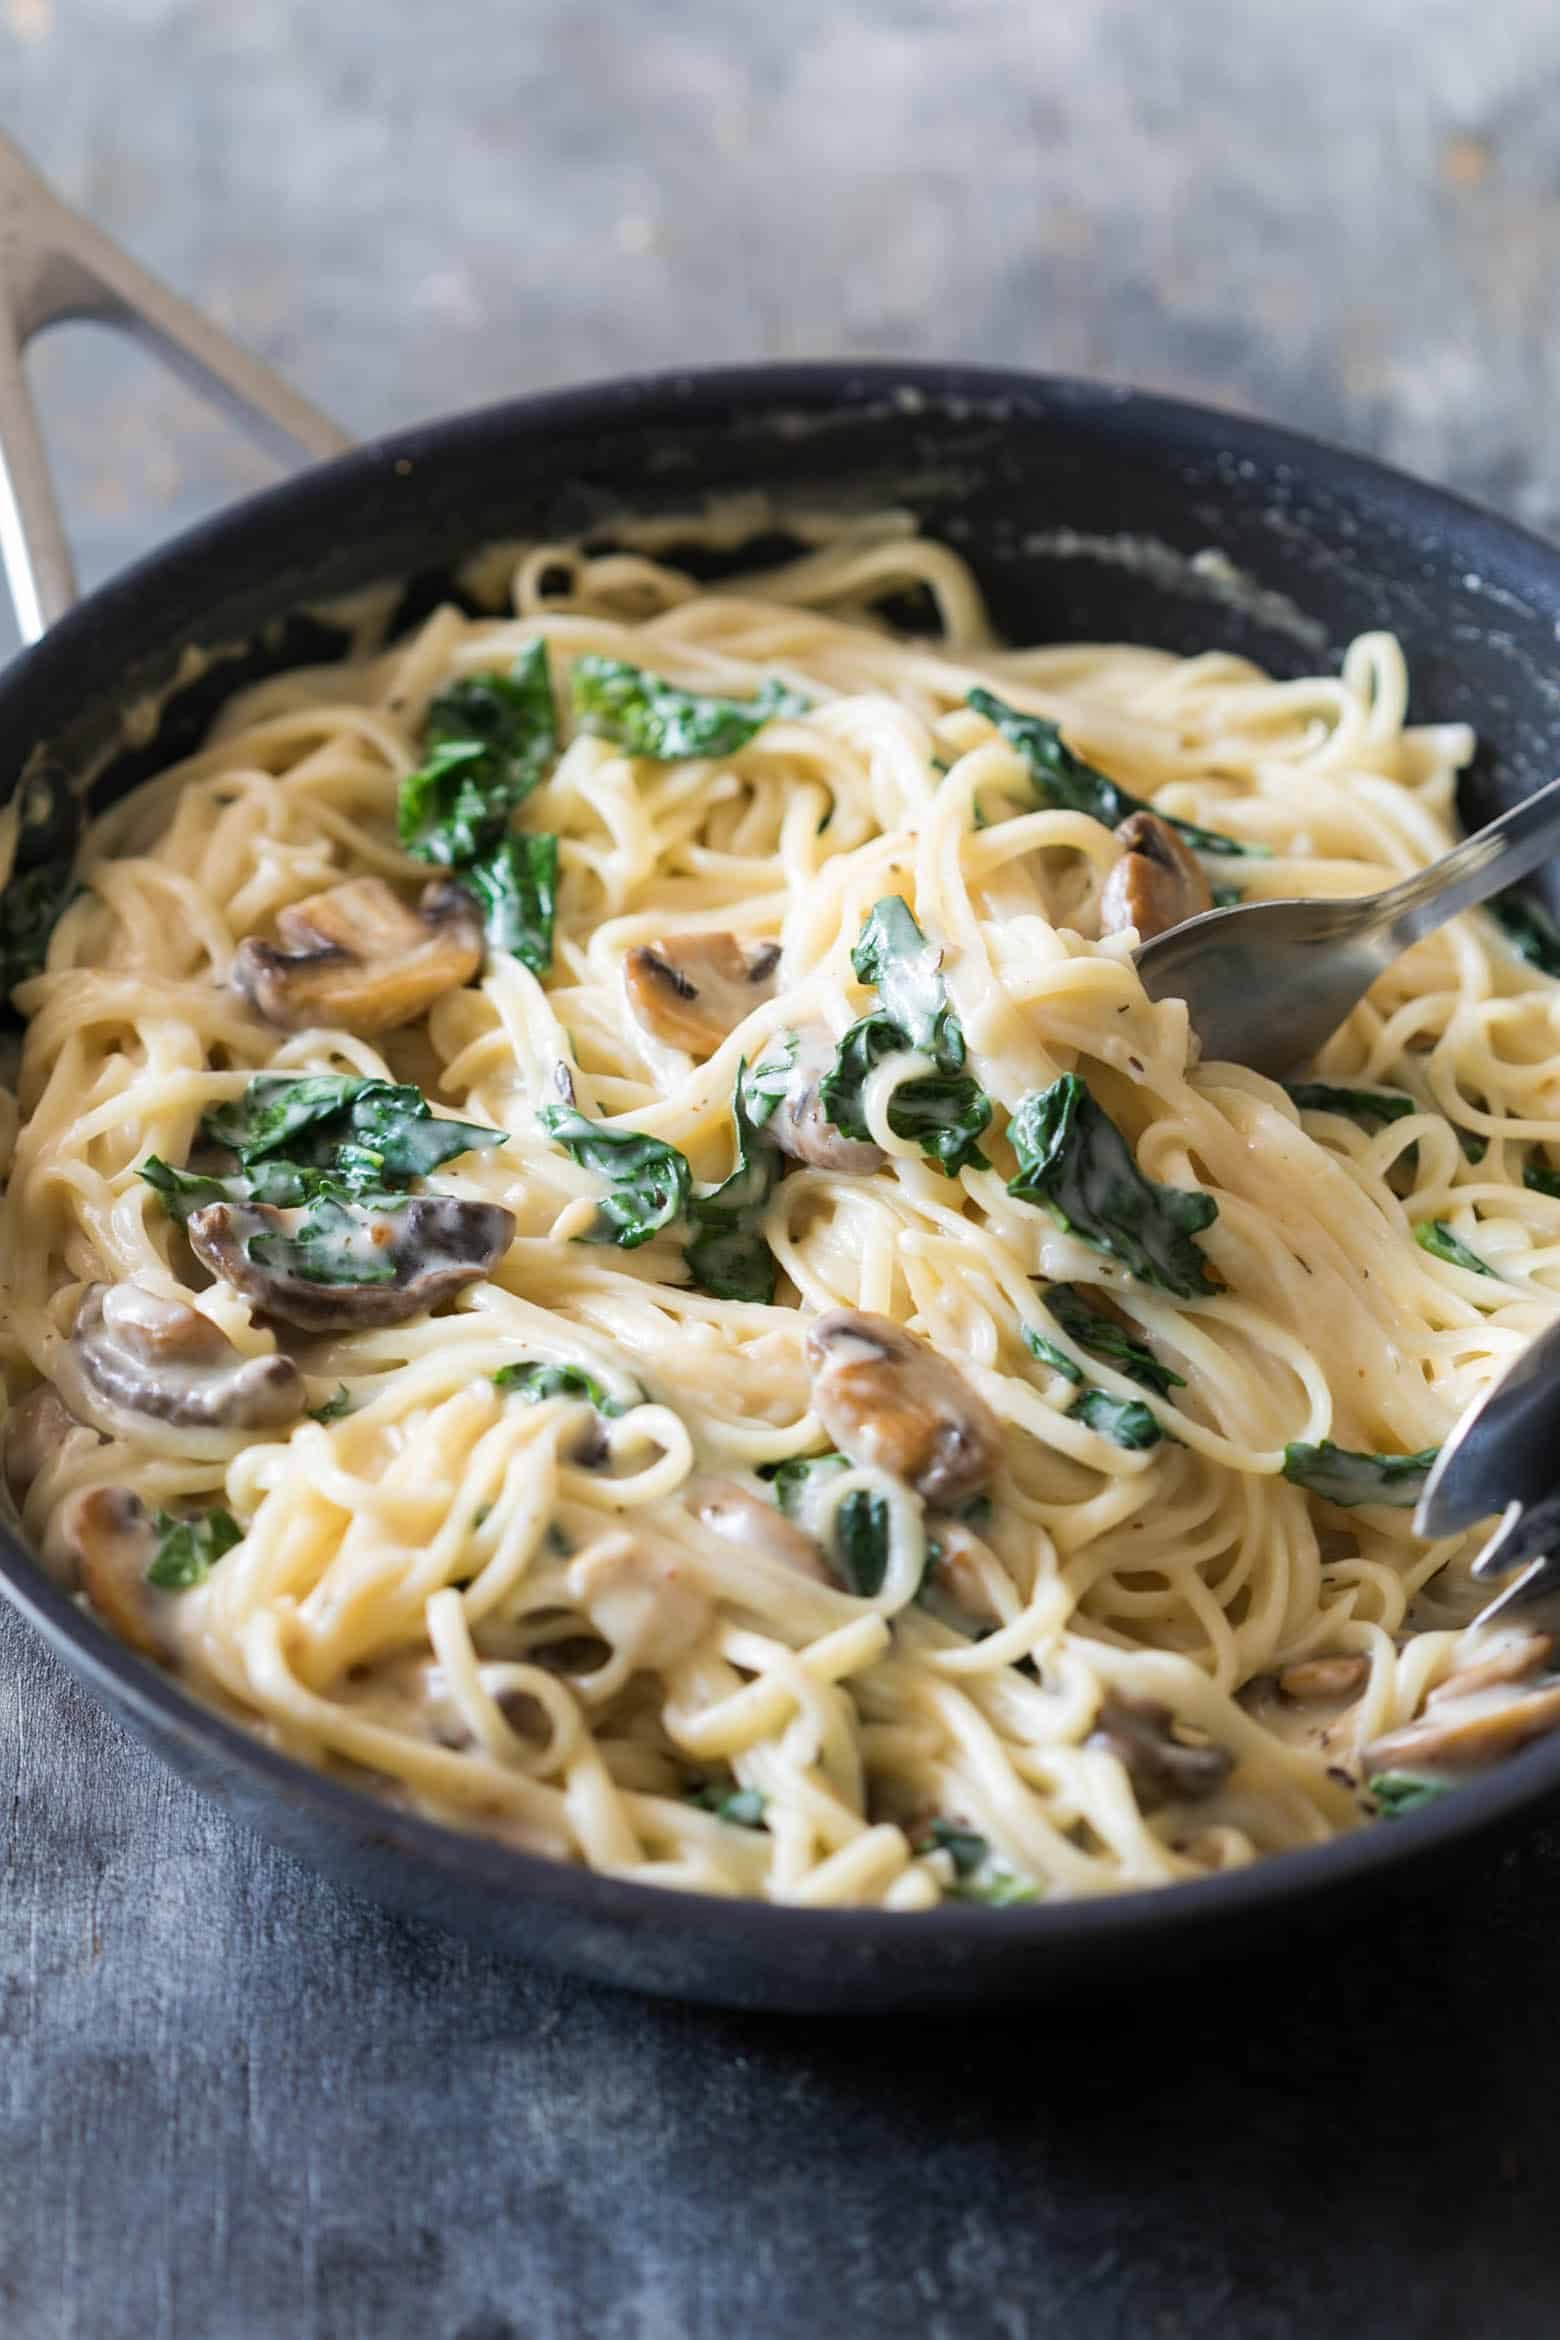 Creamy lemon mushroom kale linguine pasta is vegetarian, ready in 30 minutes with the best healthy alfredo style white sauce you'll make!